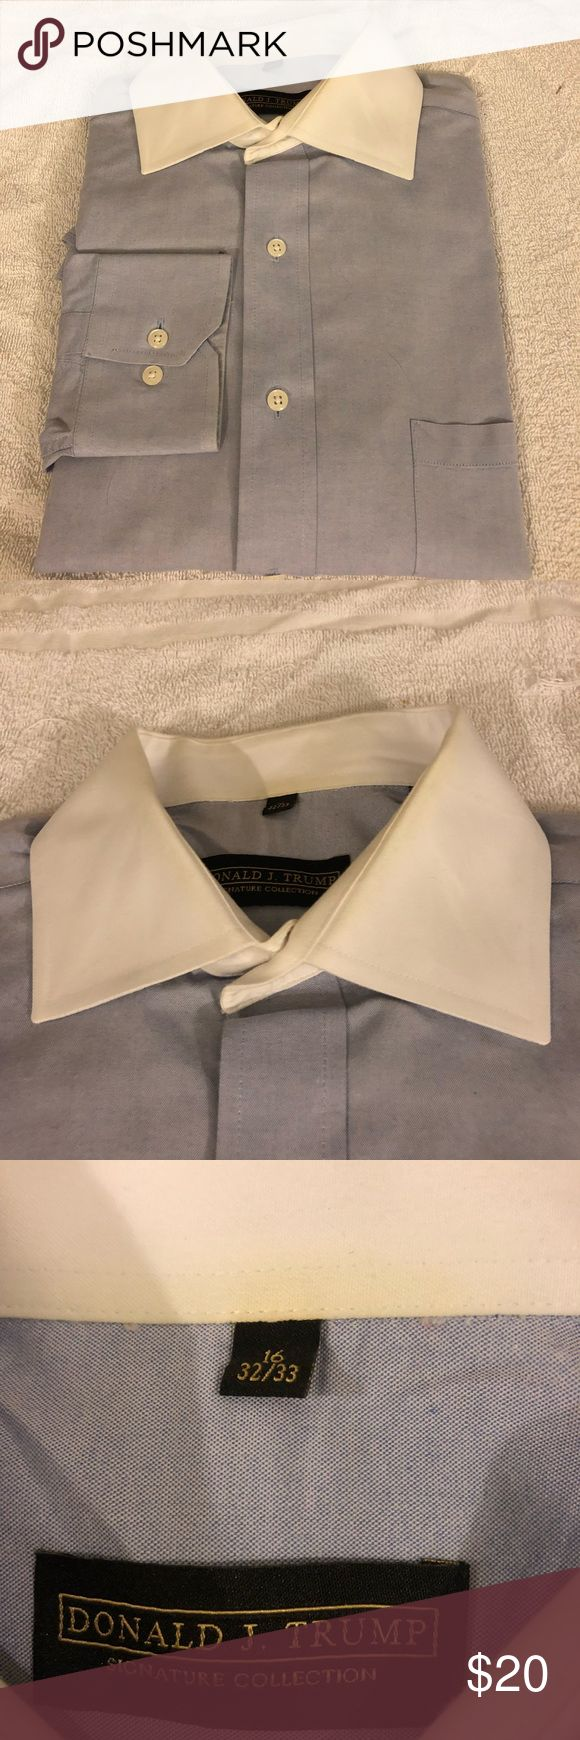 Donald Trump Blue French Cuff Shirt 16 32/33 Donald Trump Solid Blue with White Collar French Cuff Dress Shirt size 16 32/33! Great condition!  Please make reasonable offers and bundle! Ask questions :) Donald Trump Shirts Dress Shirts